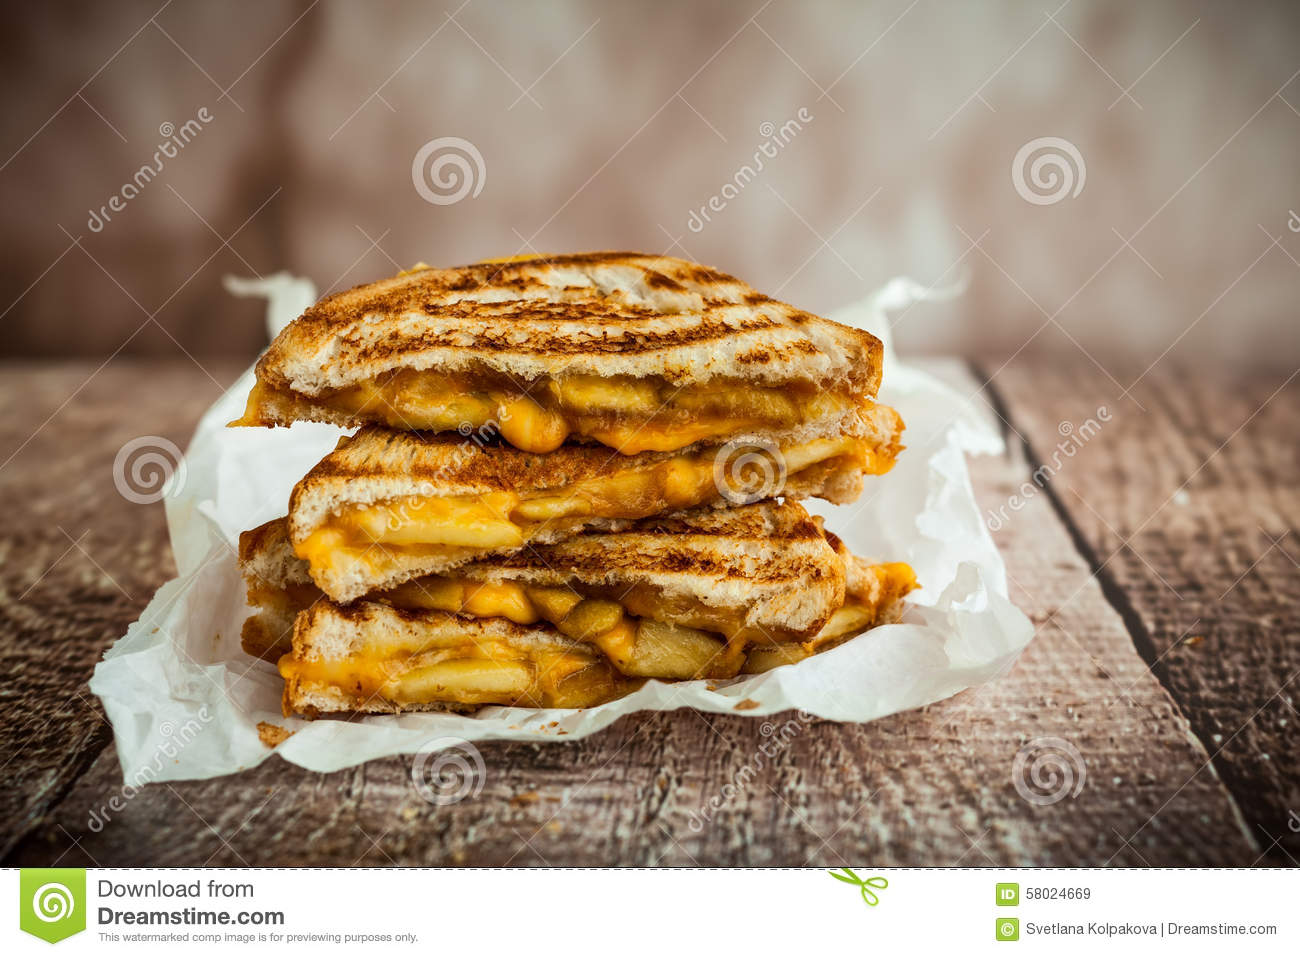 Grilled Cheese Sandwich Stock Photo - Image: 58024669